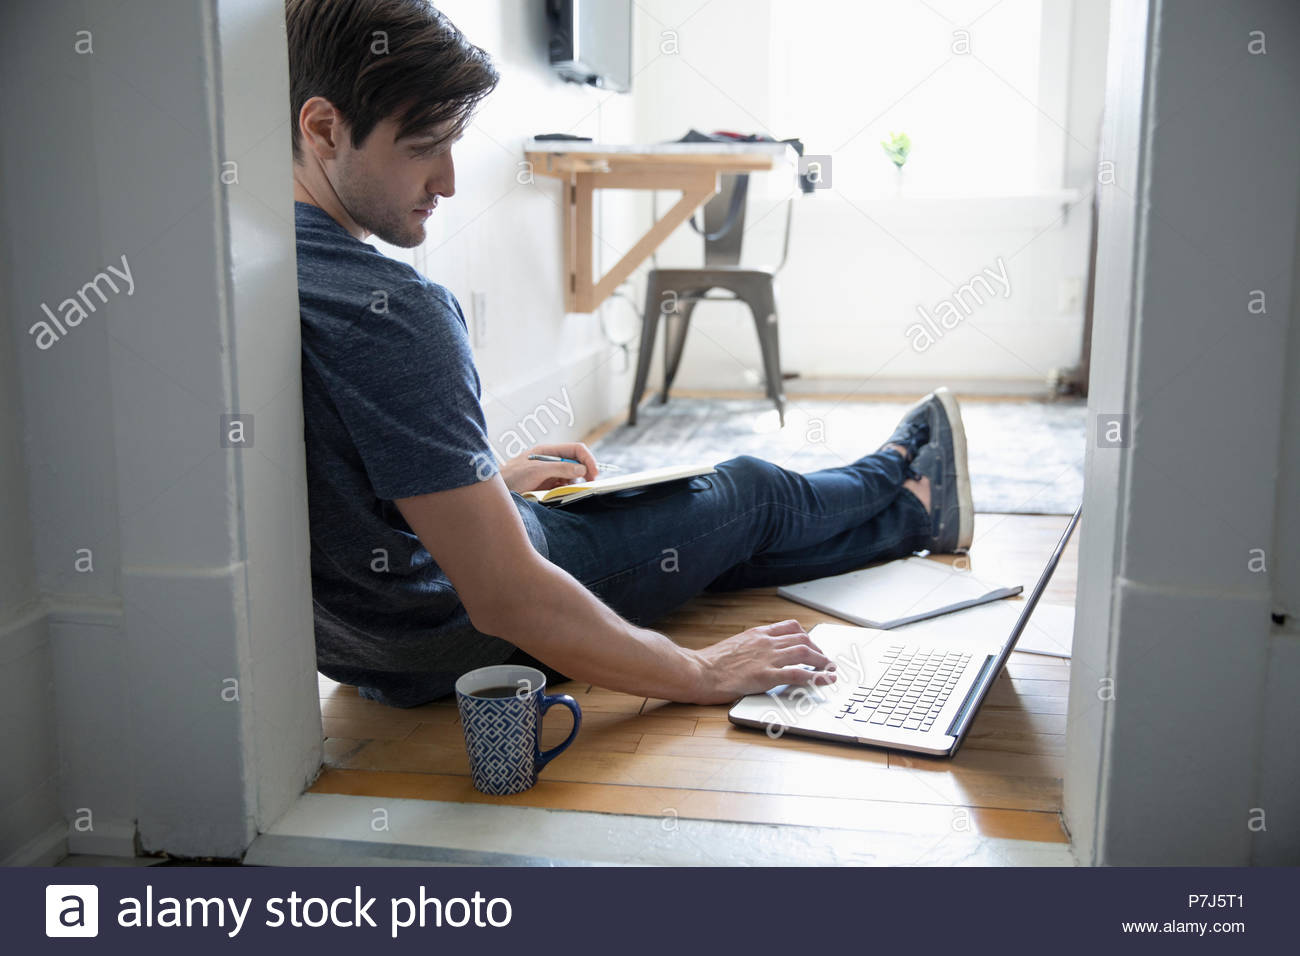 Young man drinking coffee and using laptop on floor - Stock Image